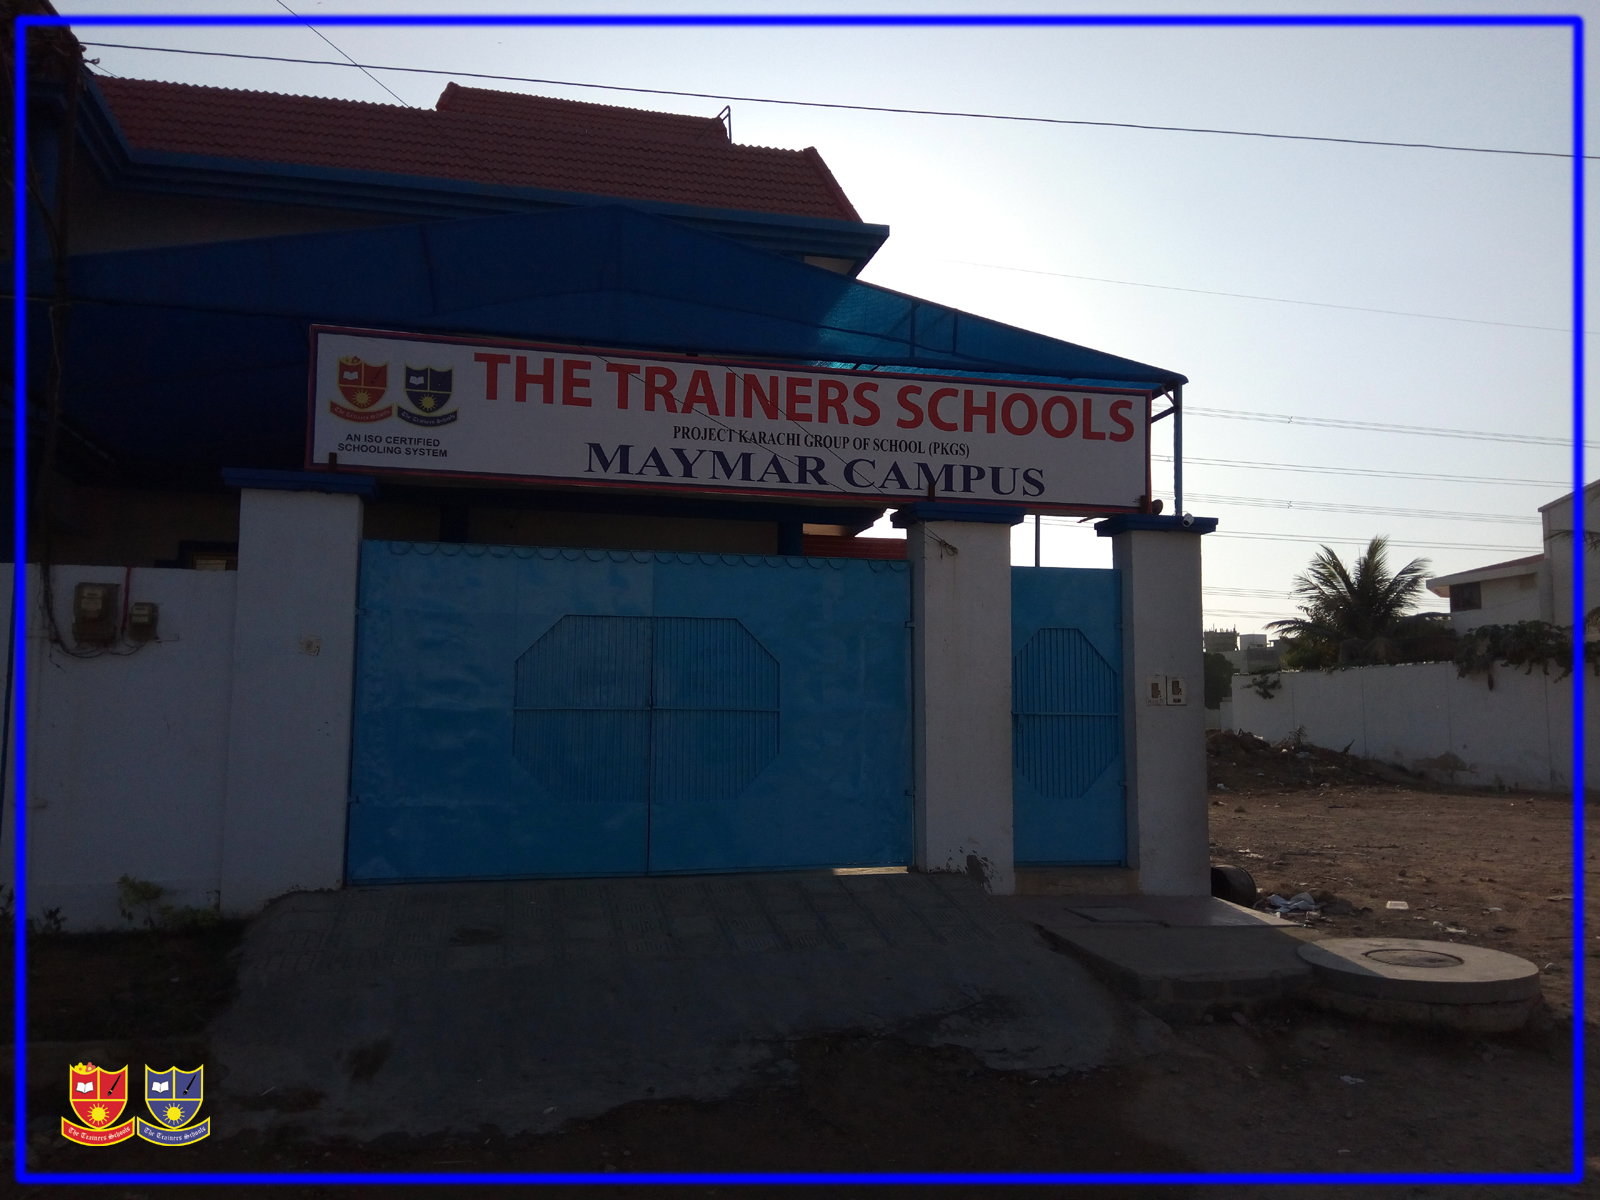 The Trainers Schools - Gulshan-e-Maymar Campus